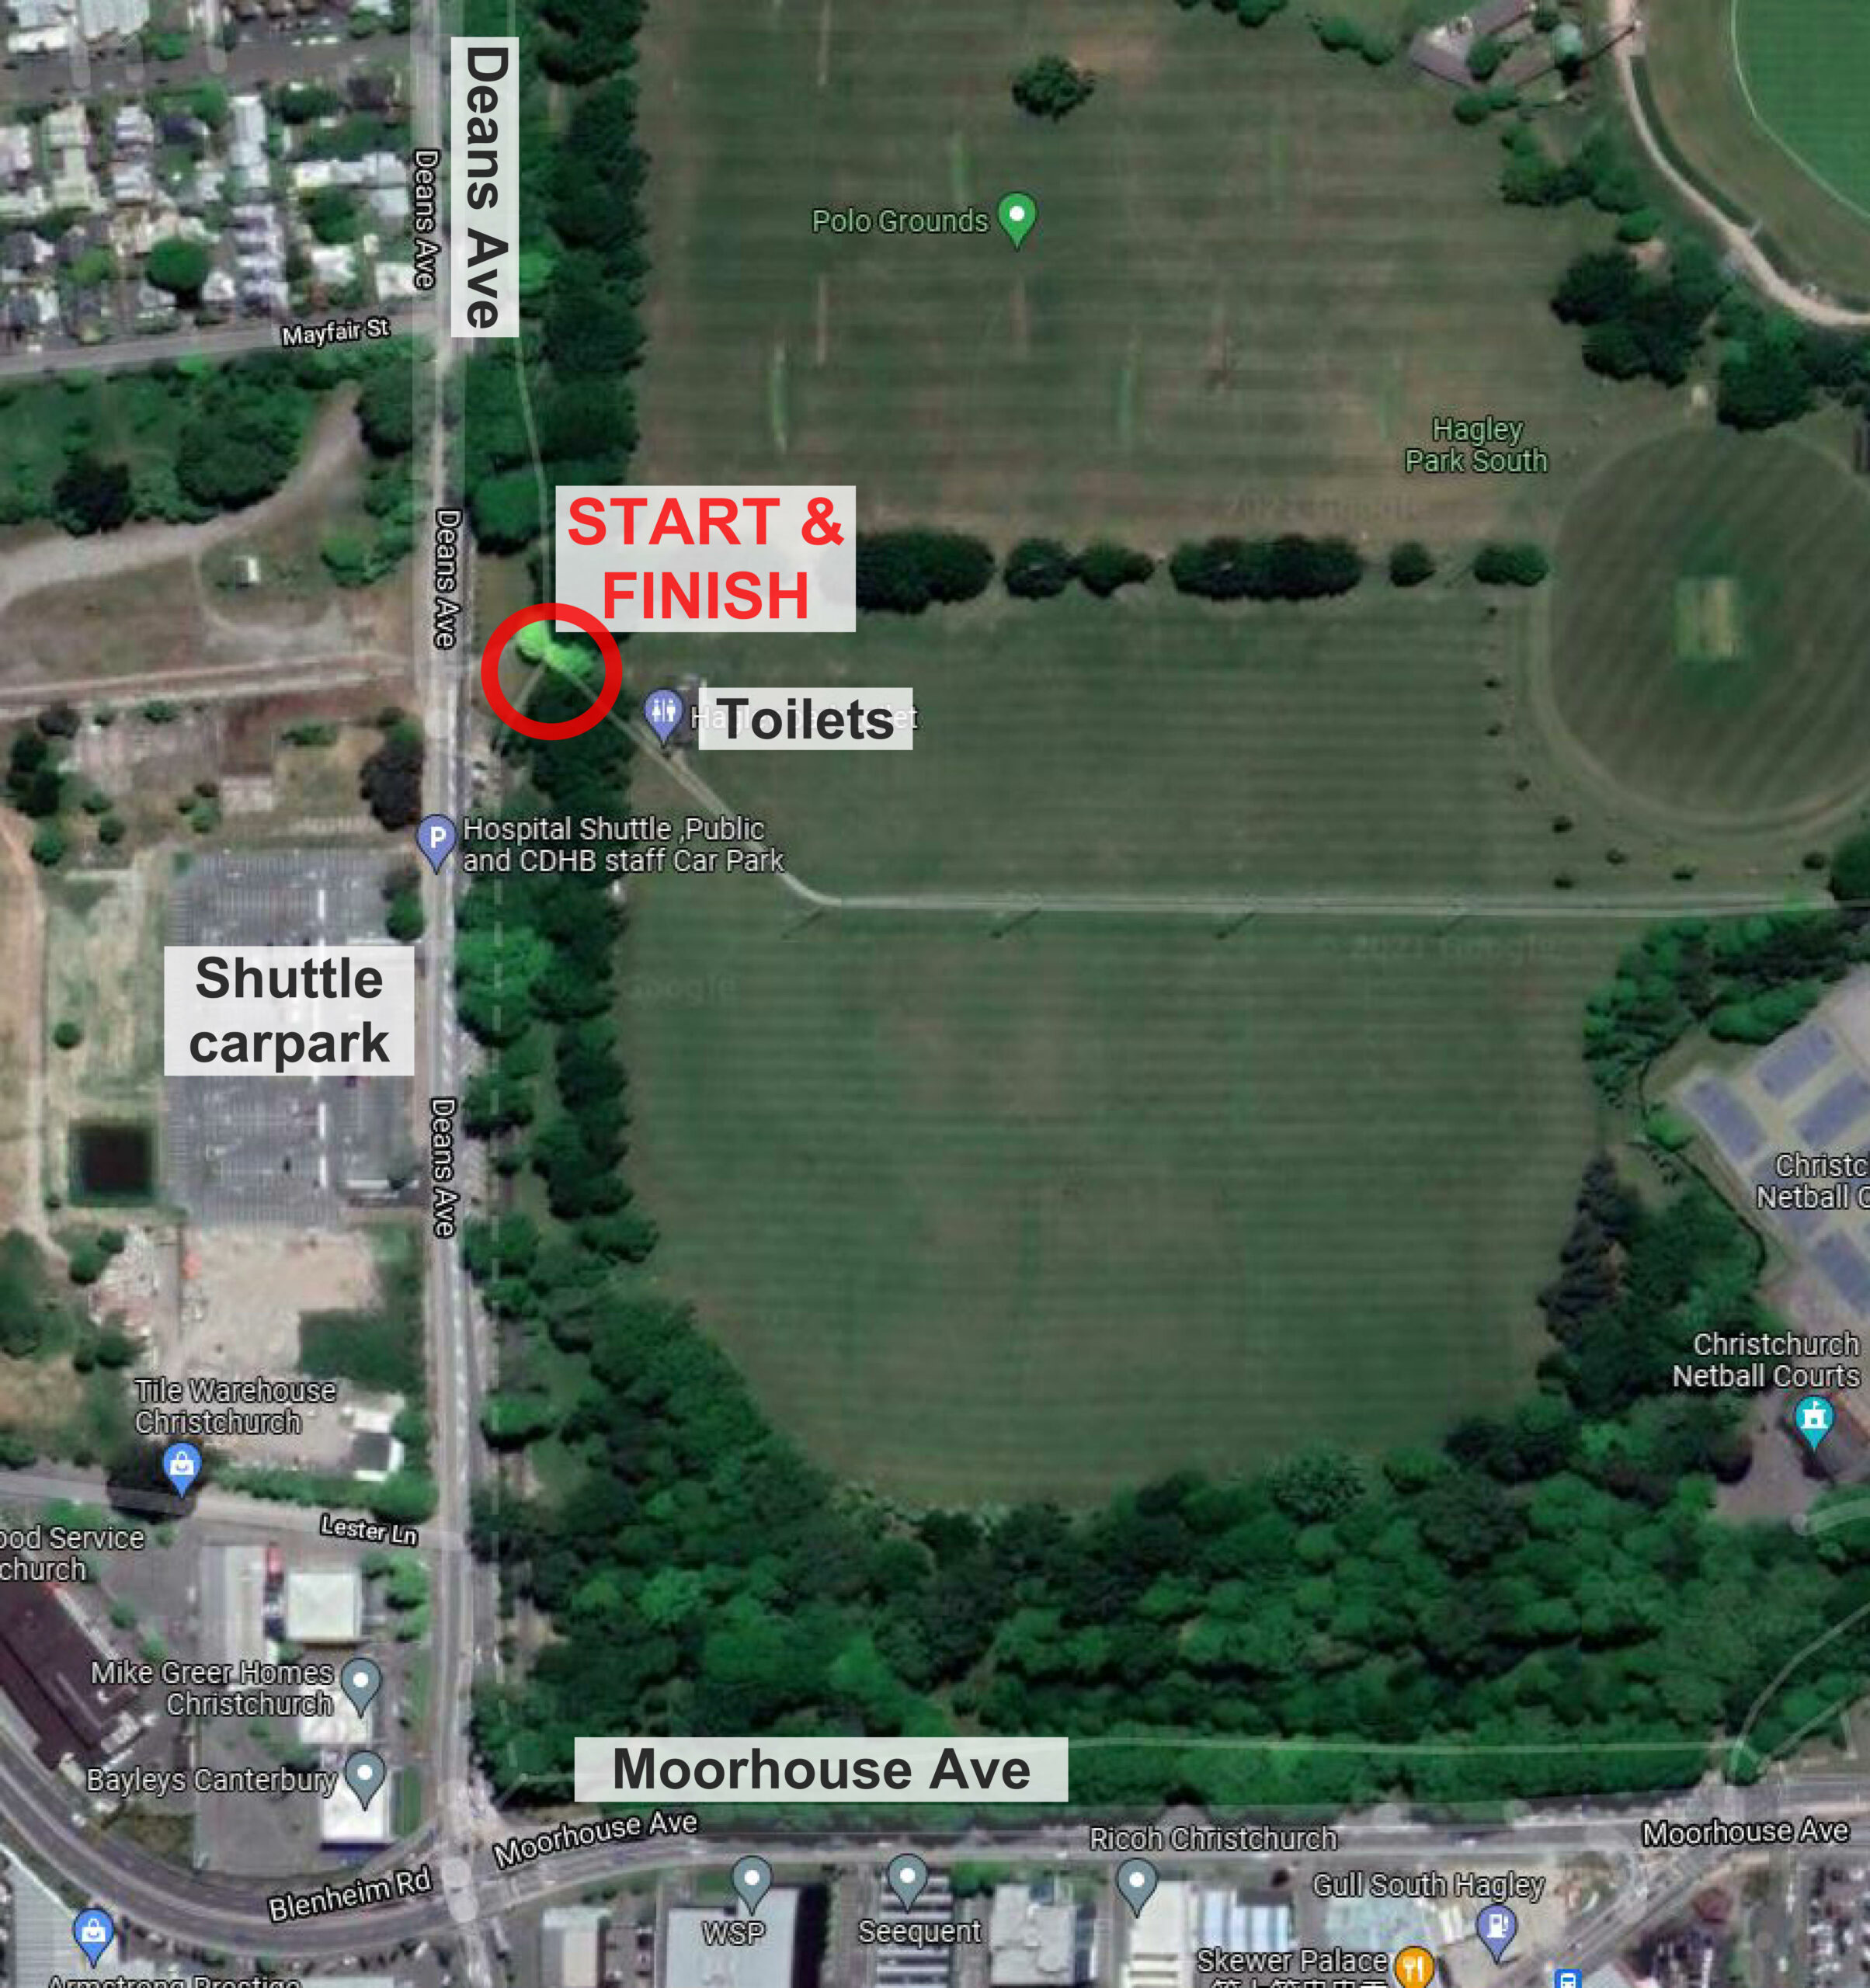 Meeting location in South Hagley park, public toilets opposite the hospital shuttle carpark